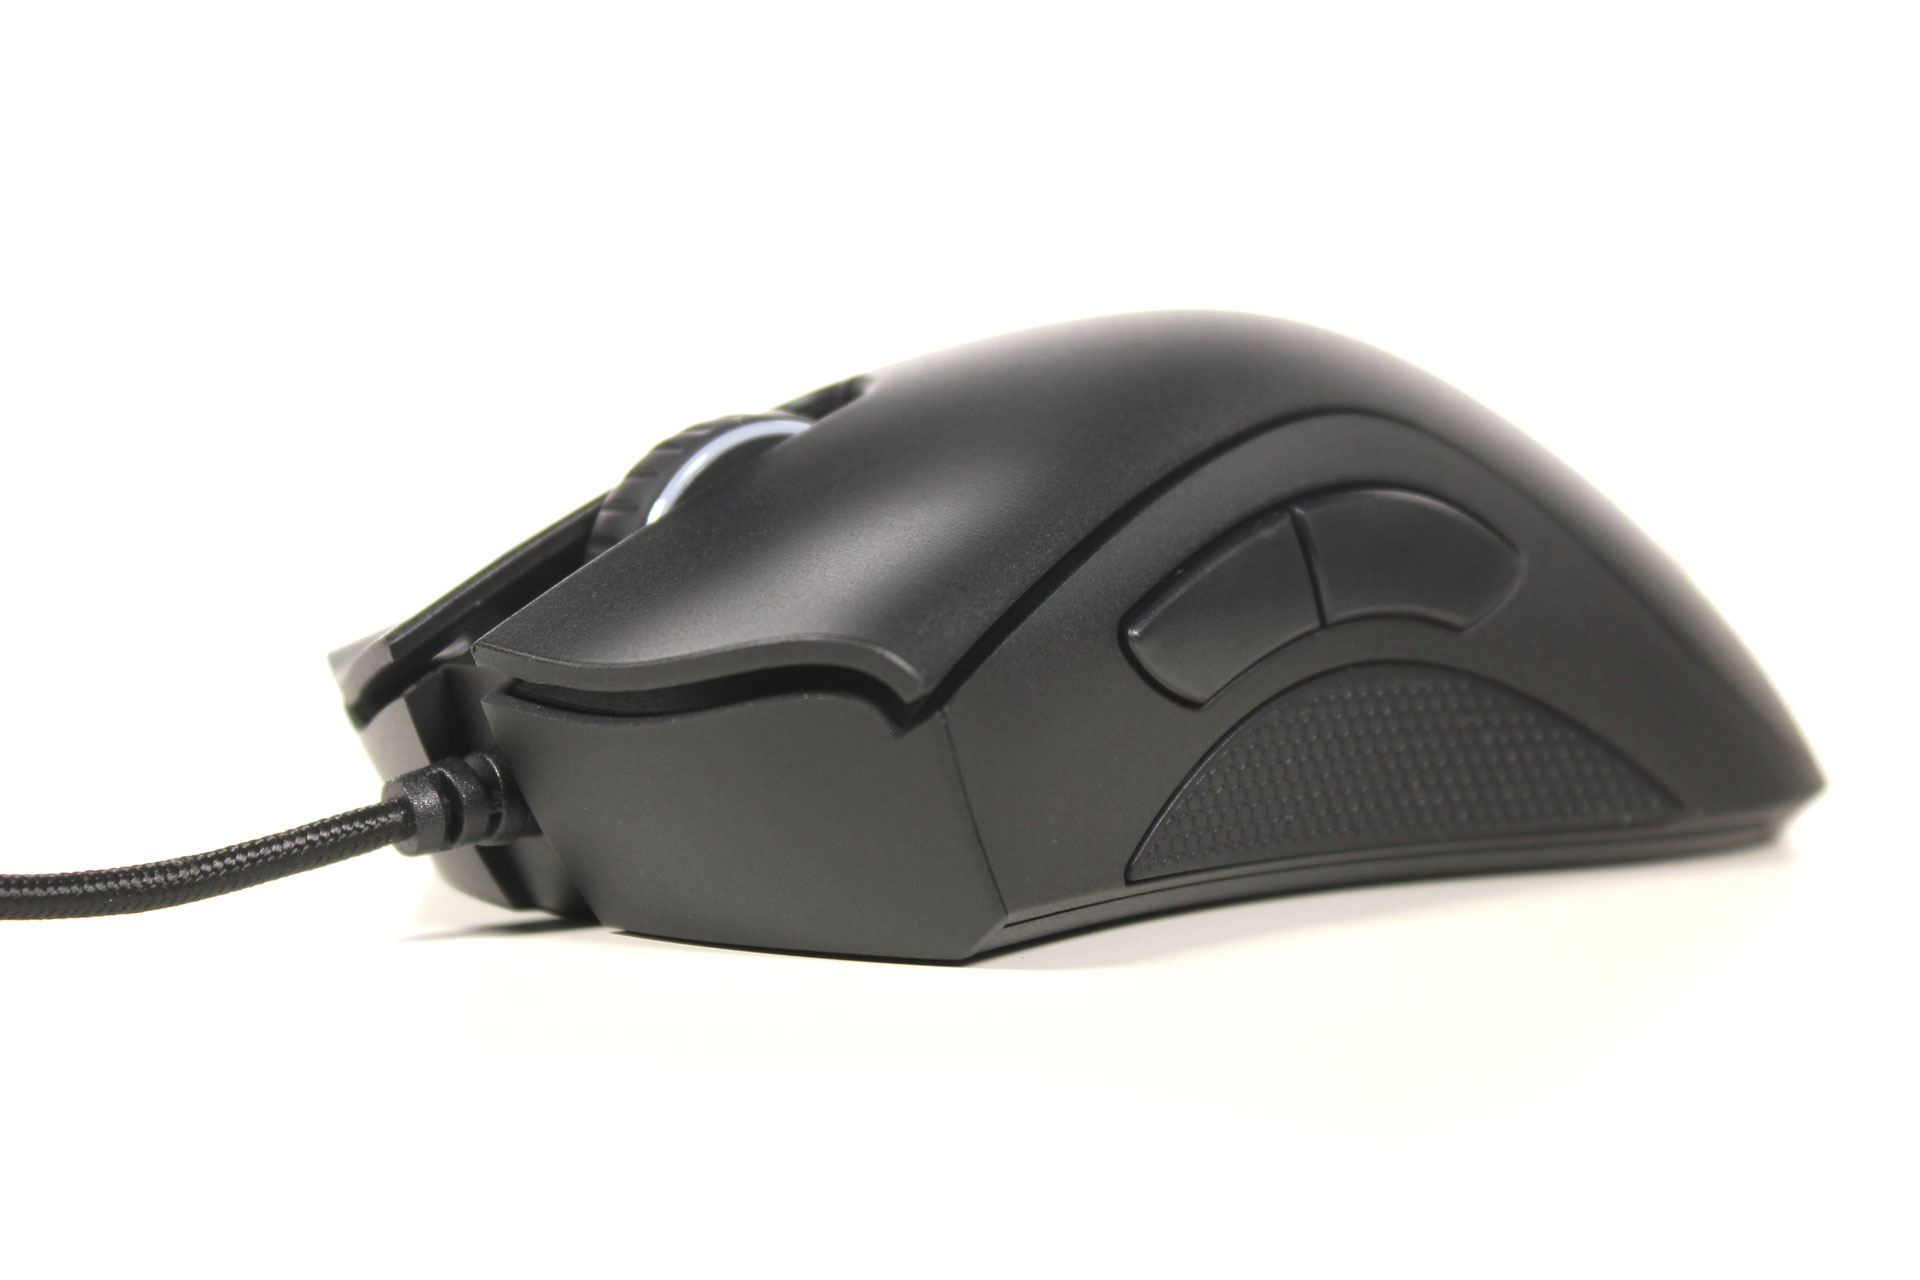 Test Razer Deathadder Chroma Und Kraken 71 Keyboard Blackwidow T2 2014 Vorne